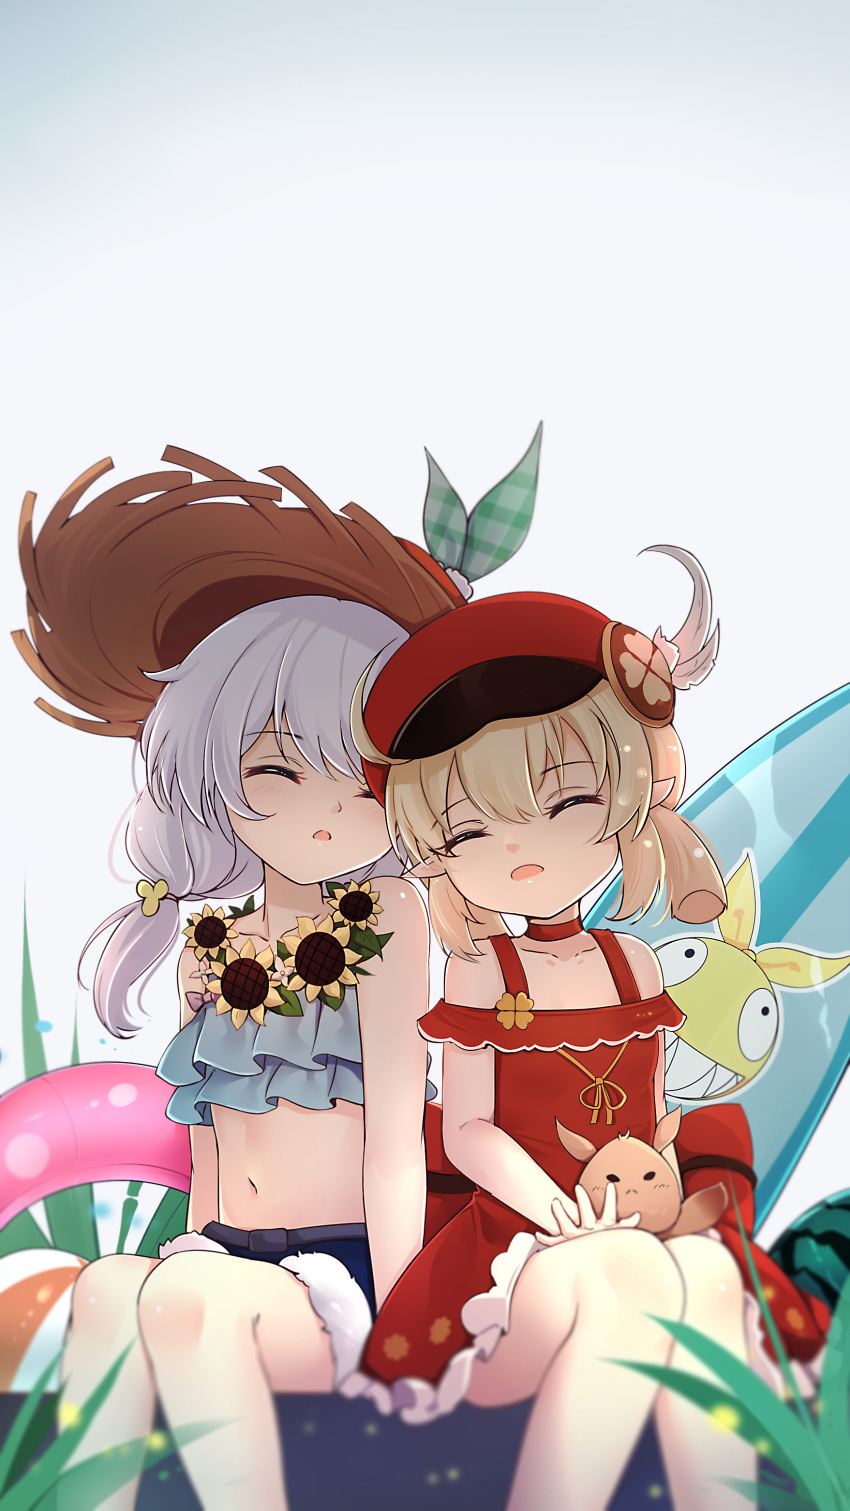 2girls absurdres ahoge ai-chan_(honkai_impact) alternate_costume bangs blurry cabbie_hat casual choker closed_eyes clover_print collarbone commentary_request company_connection contemporary crossover depth_of_field dodoco_(genshin_impact) dress eyebrows_visible_through_hair flower flower_necklace food fruit genshin_impact hair_between_eyes hat head_rest head_tilt highres honkai_(series) honkai_impact_3rd innertube jewelry klee_(genshin_impact) light_brown_hair long_hair low_twintails midriff mihoyo_technology_(shanghai)_co._ltd. multiple_girls navel necklace parted_lips pointy_ears qingye_ling red_dress seiyuu_connection sidelocks silver_hair sitting sleeping sleeping_on_person straw_hat sunflower surfboard theresa_apocalypse twintails watermelon